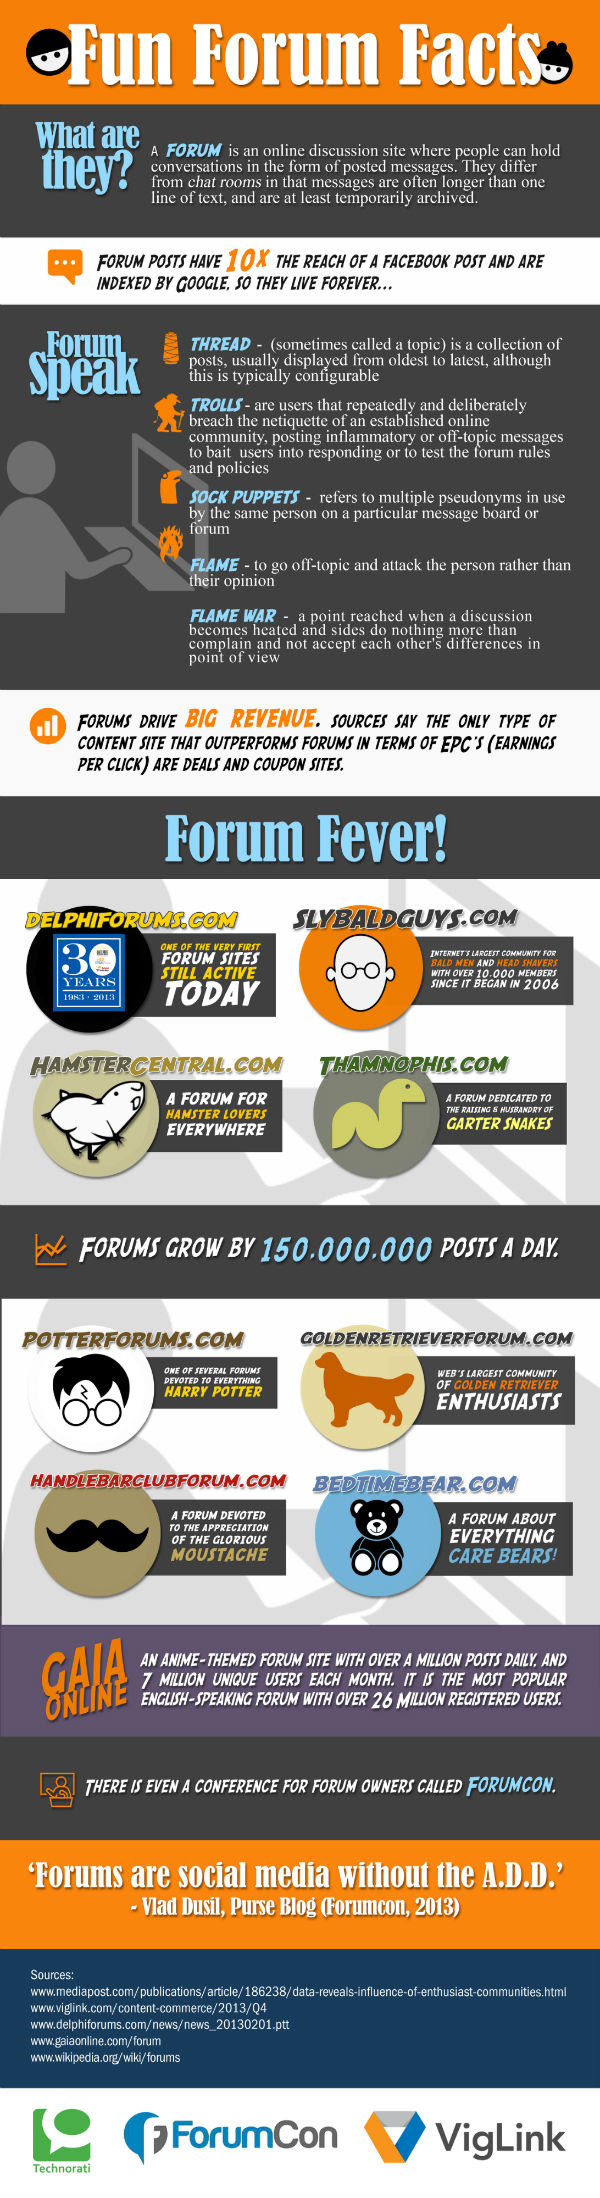 Online Forums Offer Hidden Opportunities for Marketers - #infographic